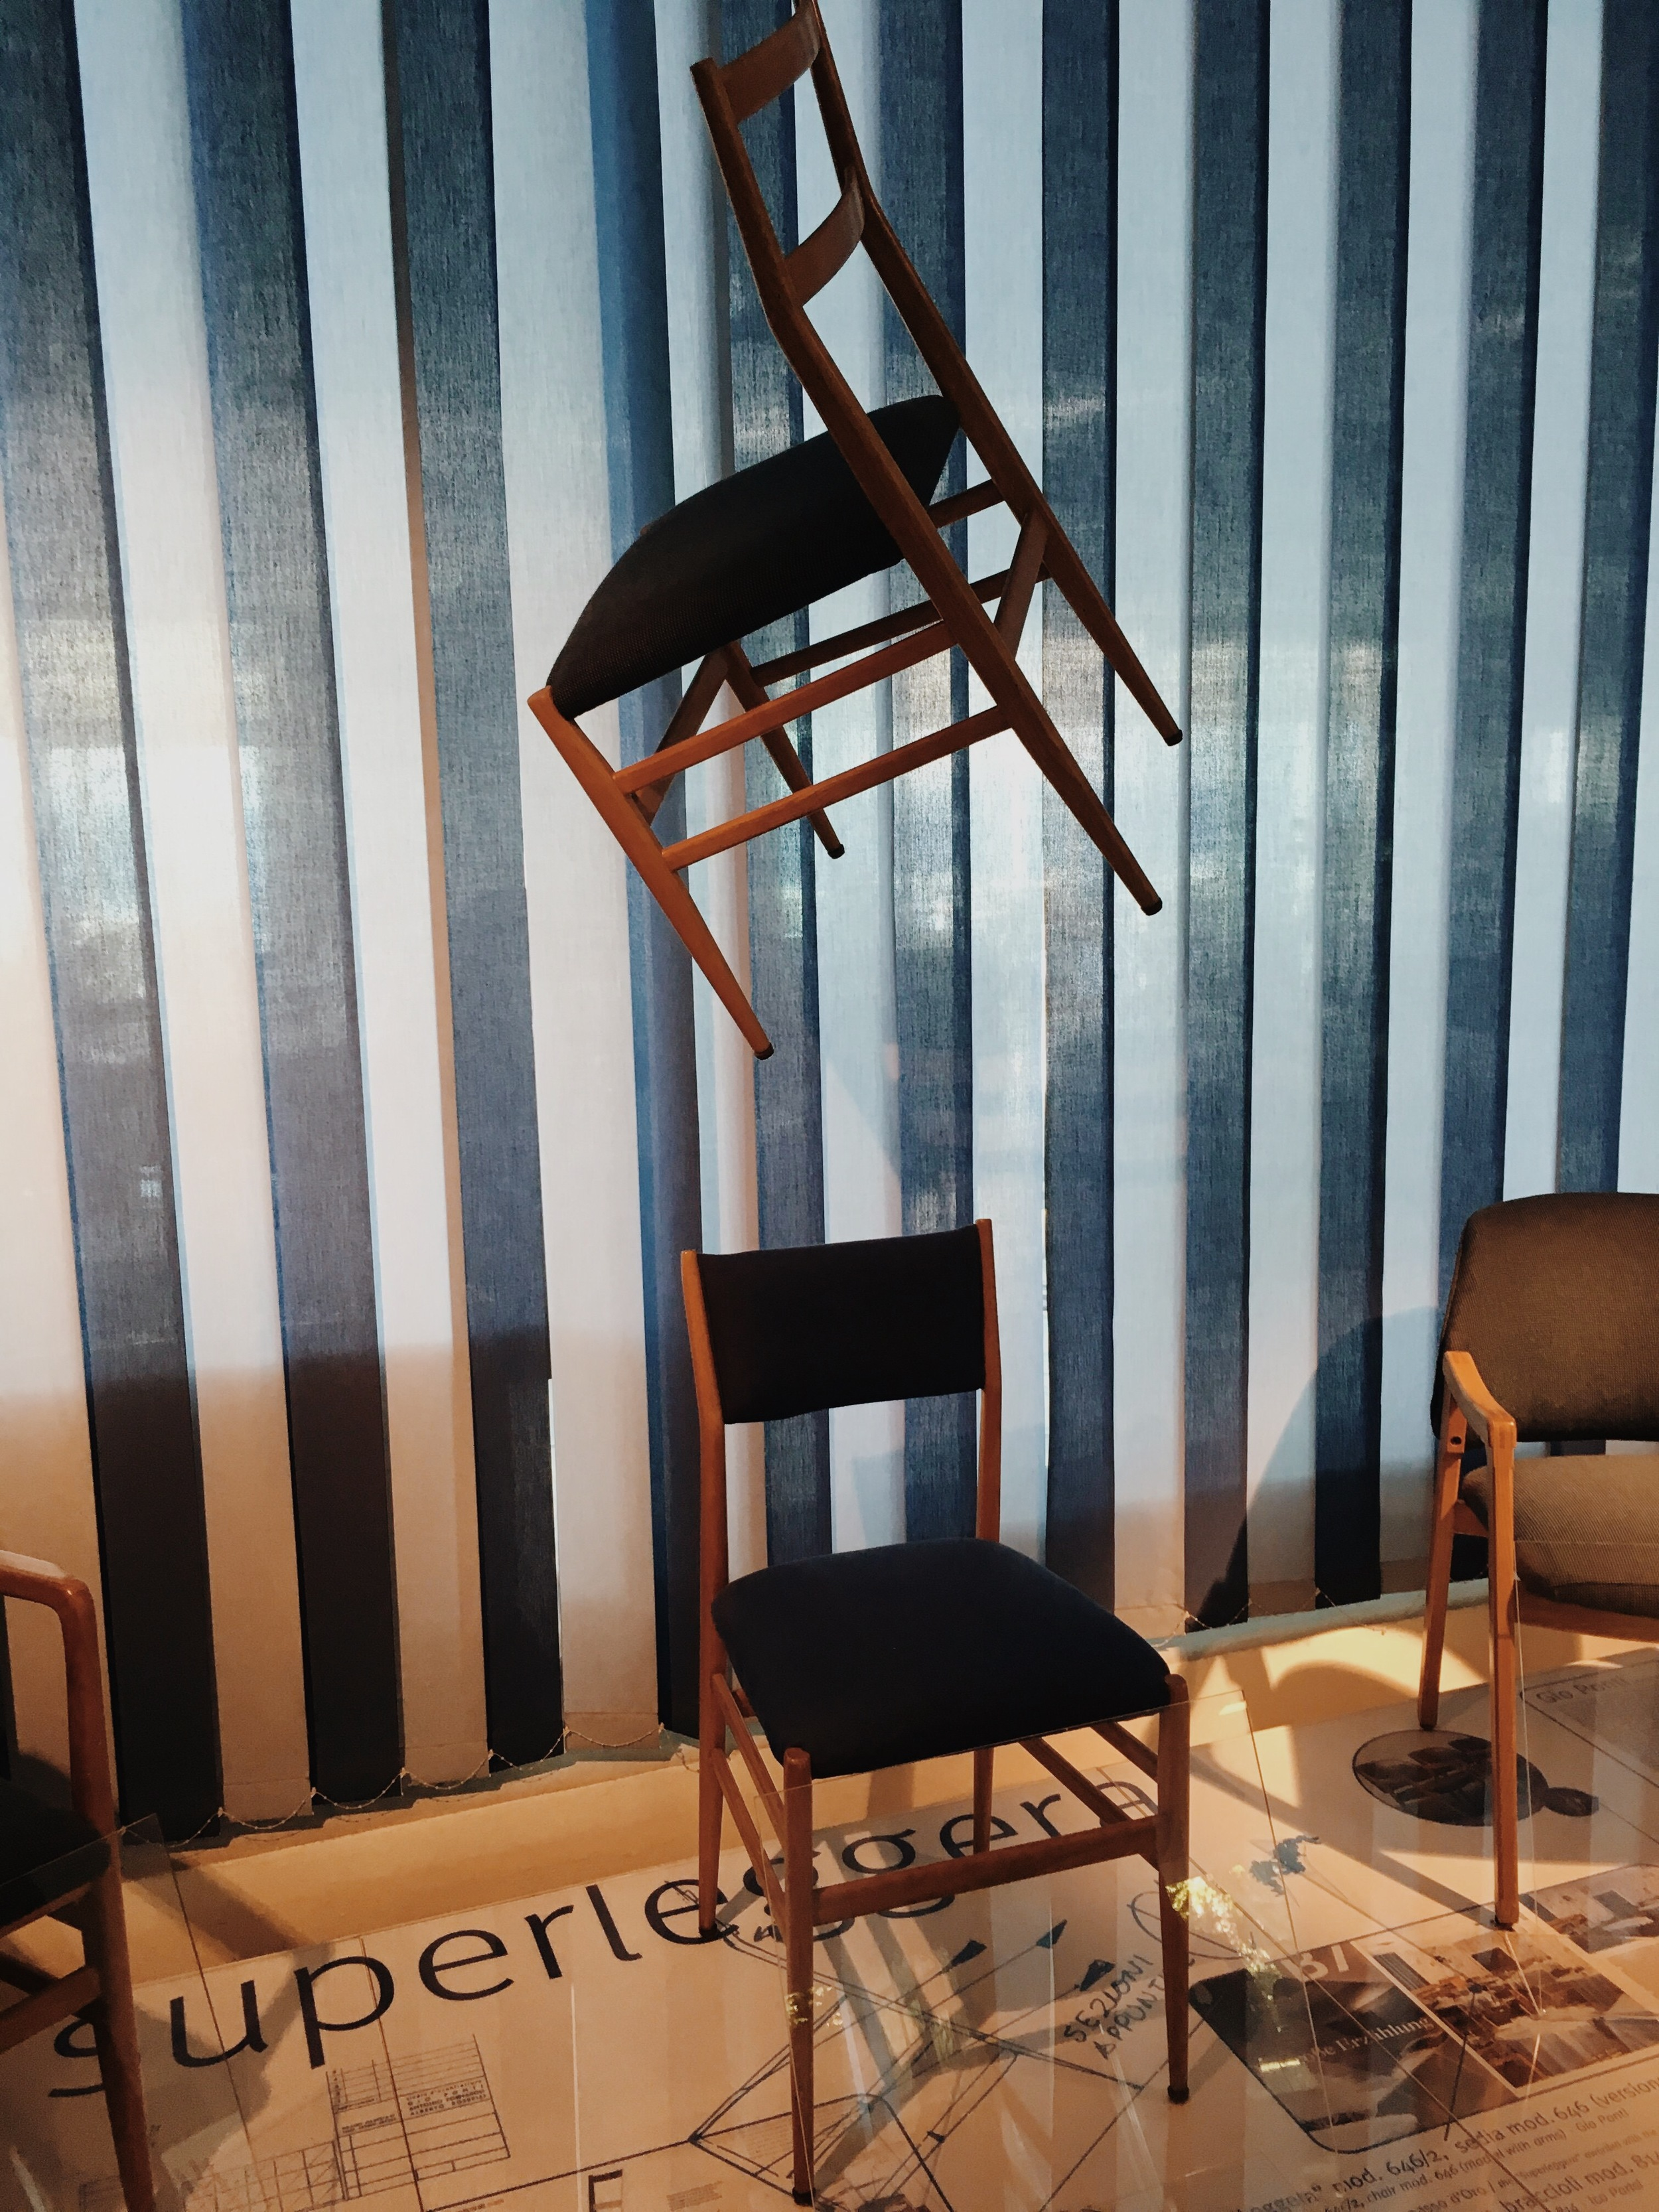 Many of Ponti's furniture designs were used in the hotel including the celebrated Superleggera chair.